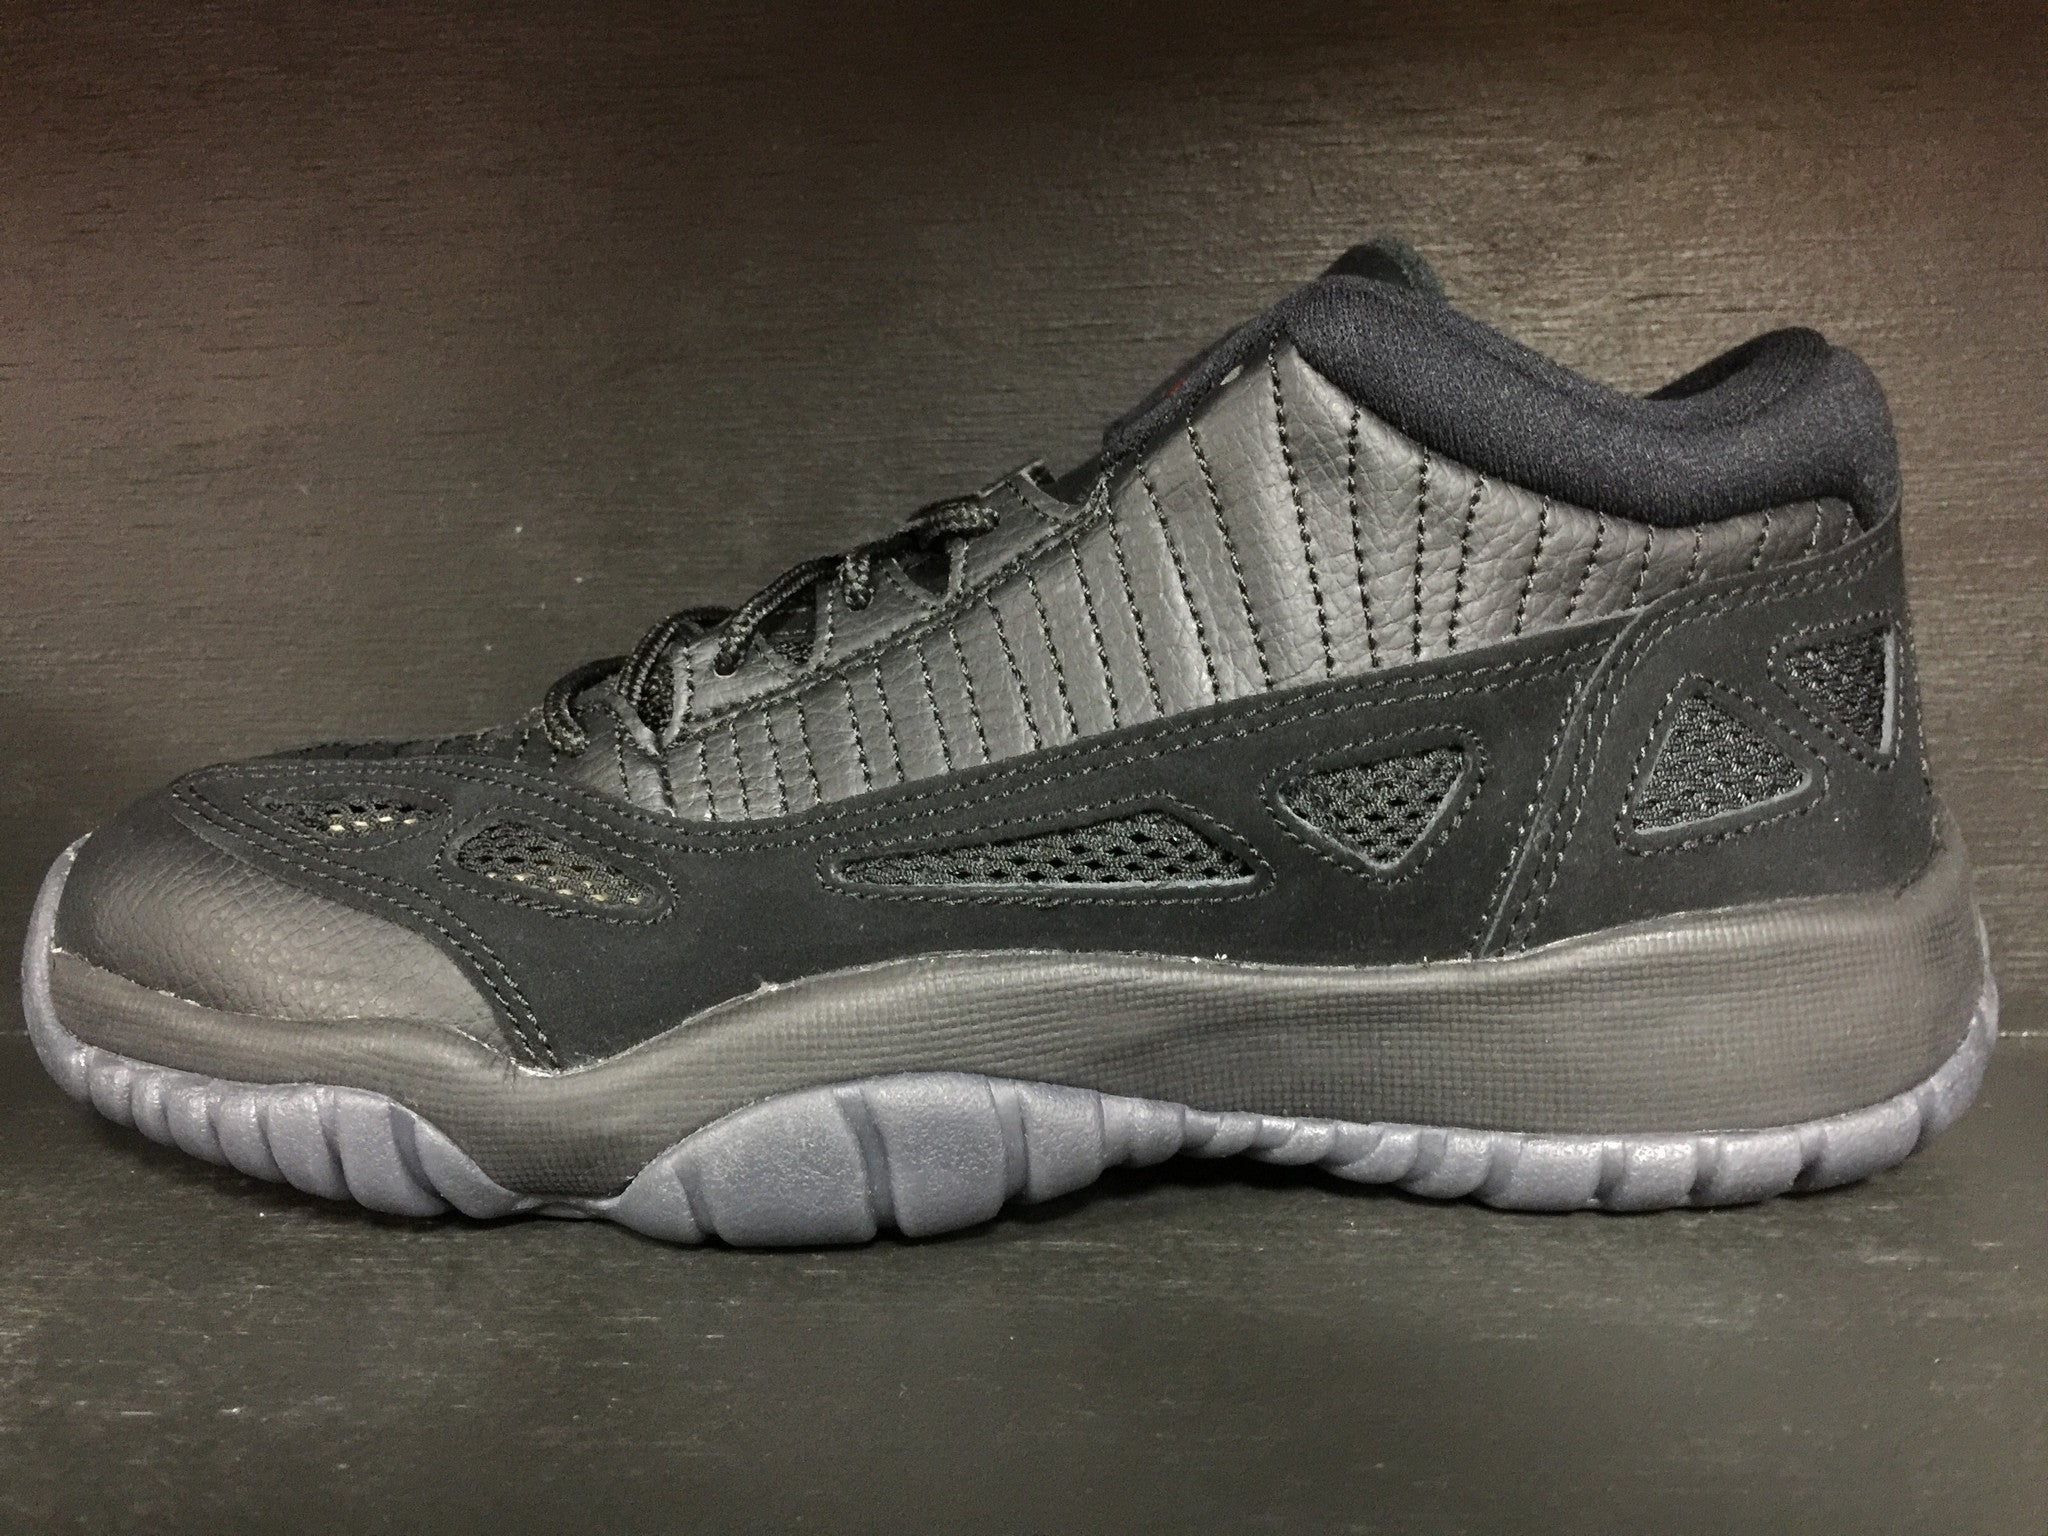 Air Jordan 11 Retro Ie Low 'Referee'